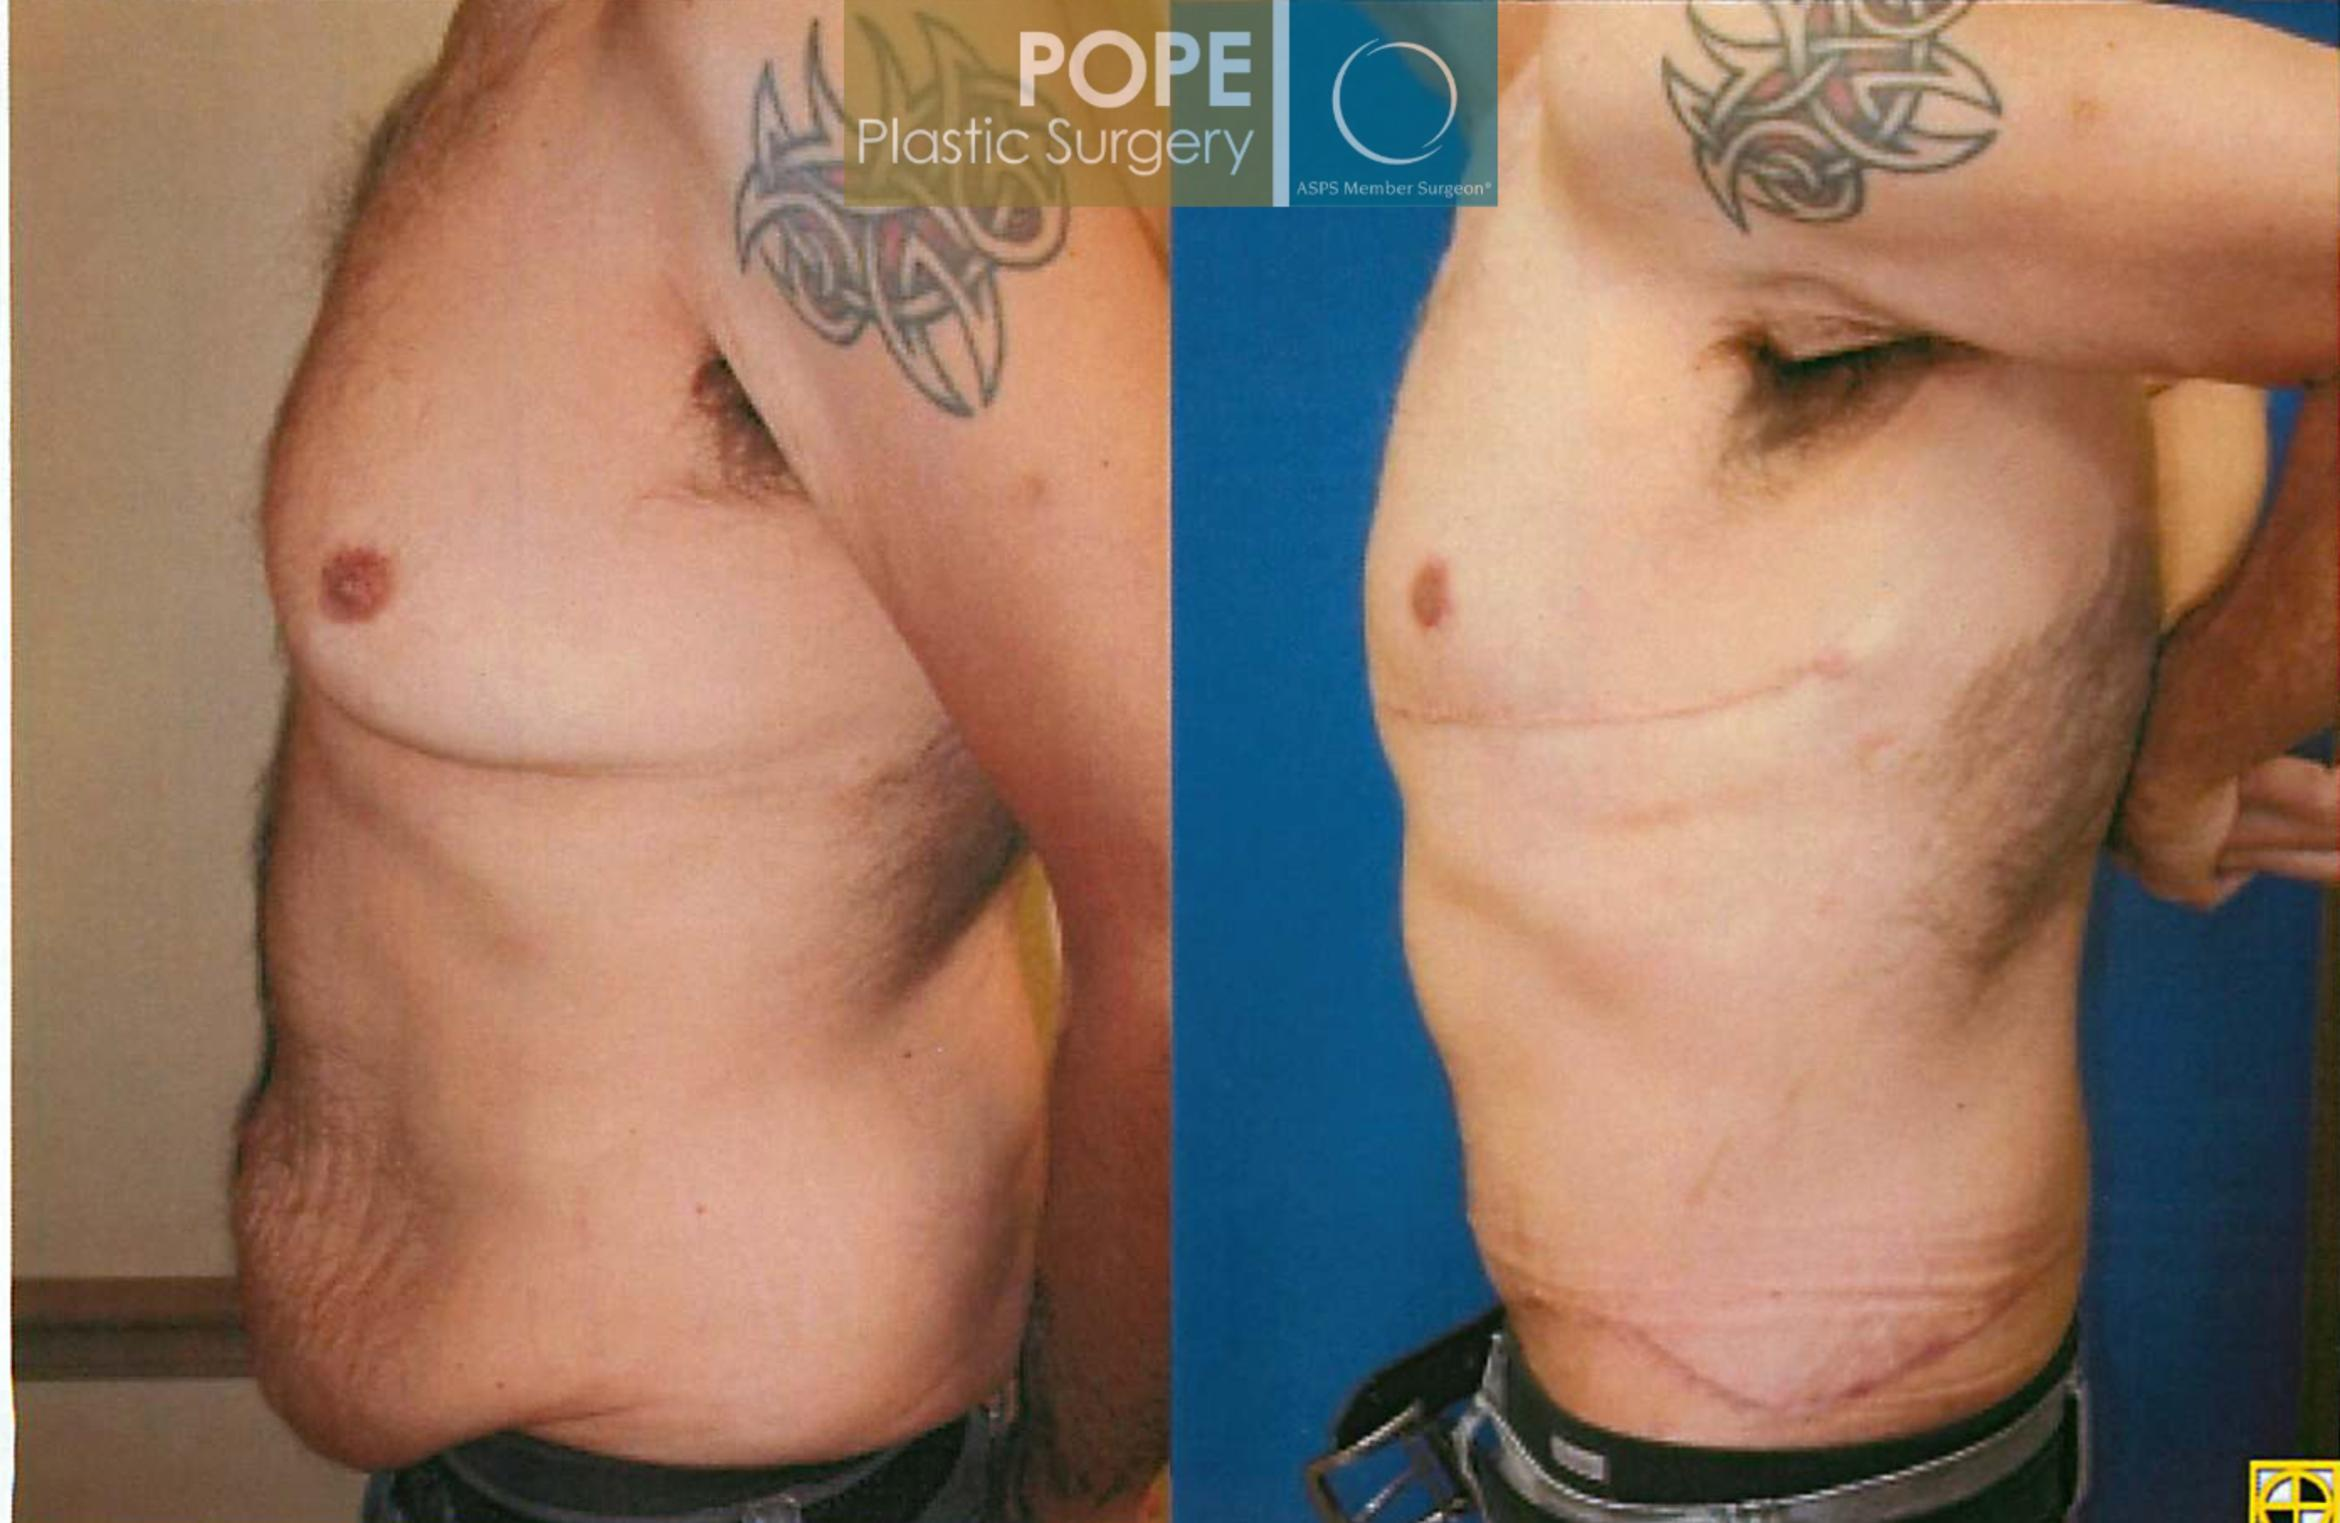 Body Lift Case 93 Before & After View #2 | Orlando, FL | Pope Plastic Surgery